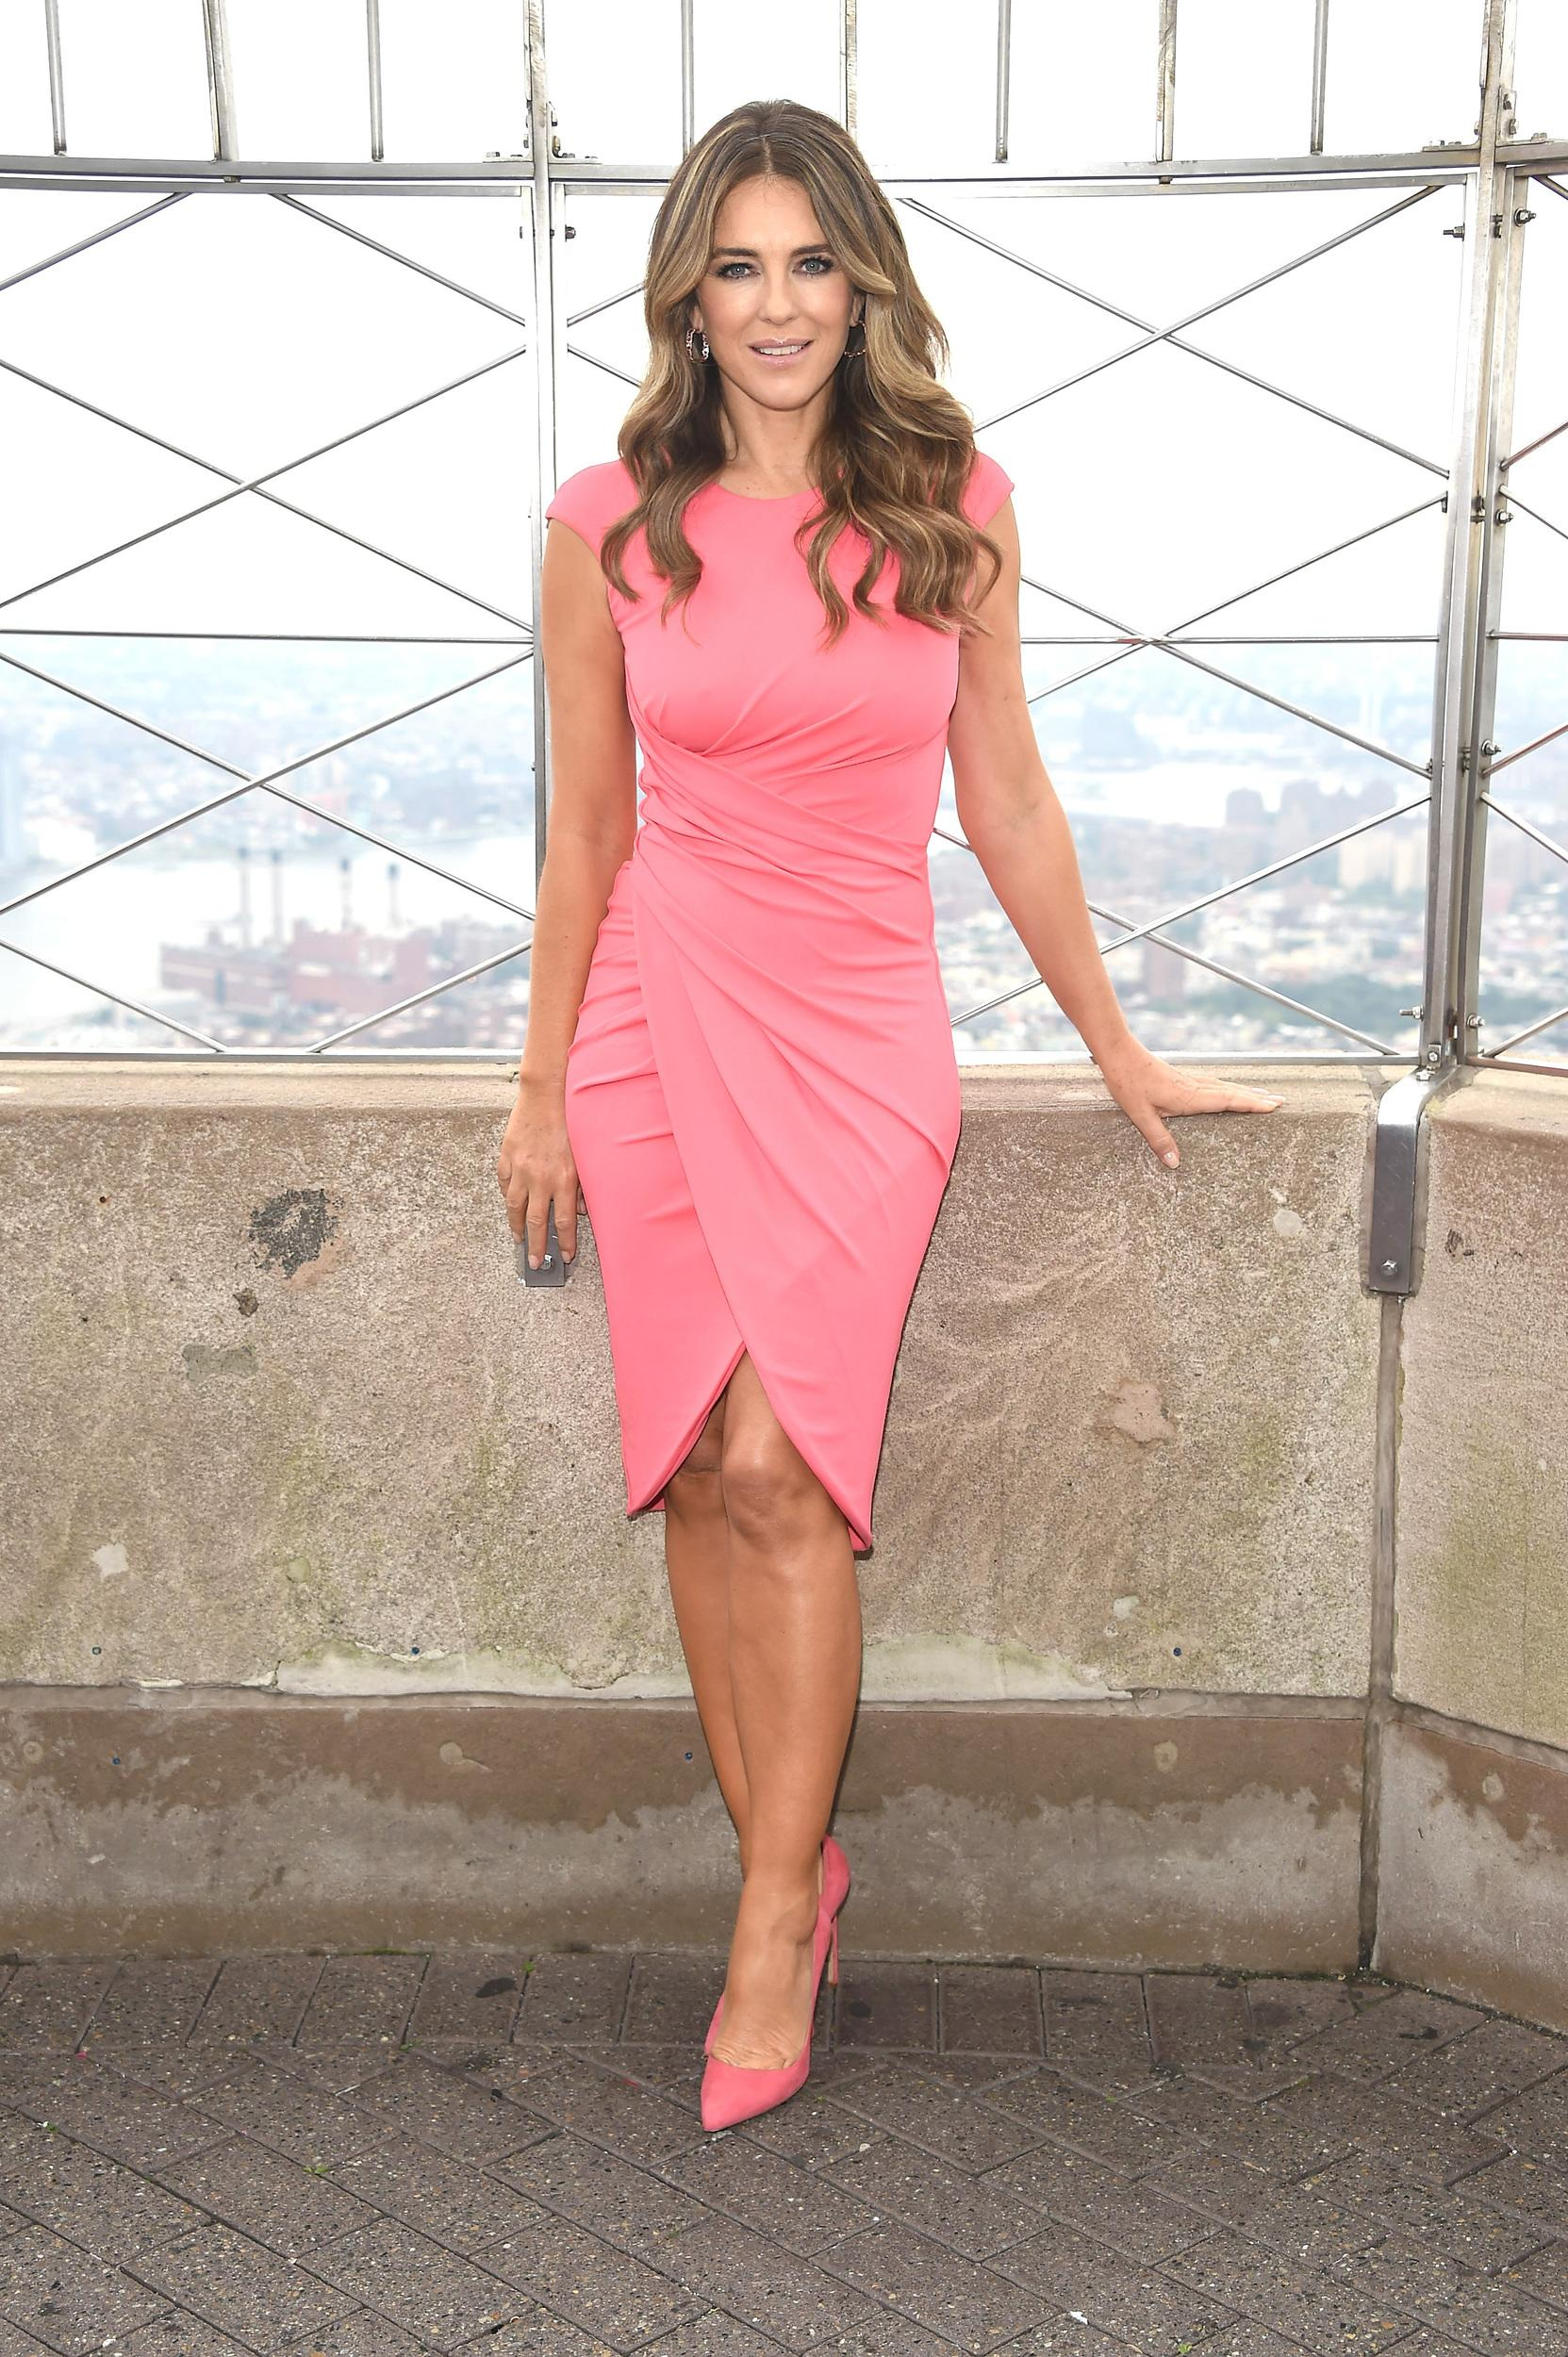 NEW YORK, NY - OCTOBER 01:  Global Ambassador Elizabeth Hurley visits The Empire State Building on behalf of the Estee Lauder Companies' Breast Cancer Campaign at The Empire State Building on October 1, 2018 in New York City.  (Photo by Gary Gershoff/WireImage)